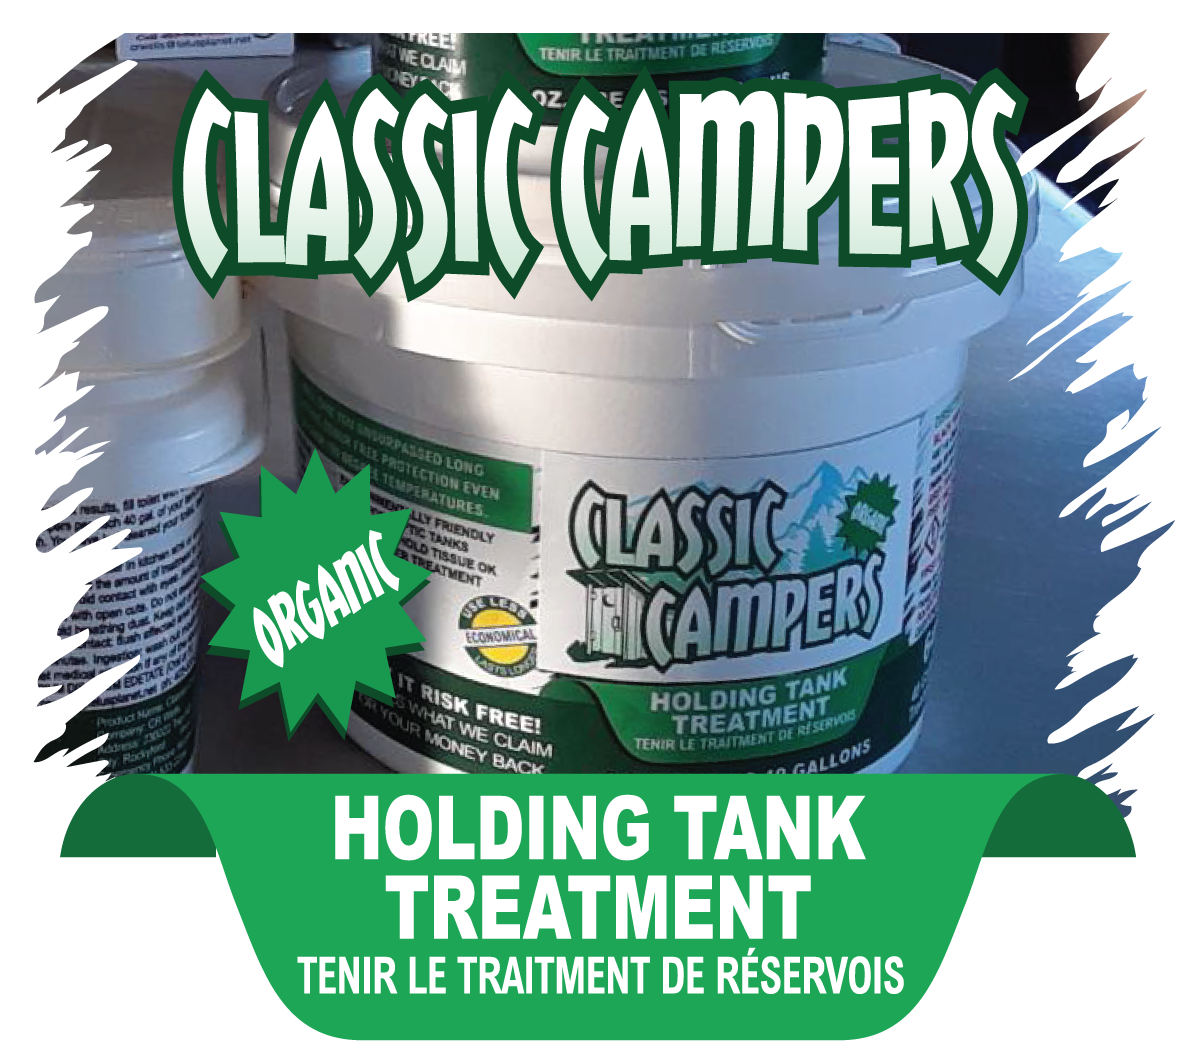 Classic Camper - Holding Tank Treatment